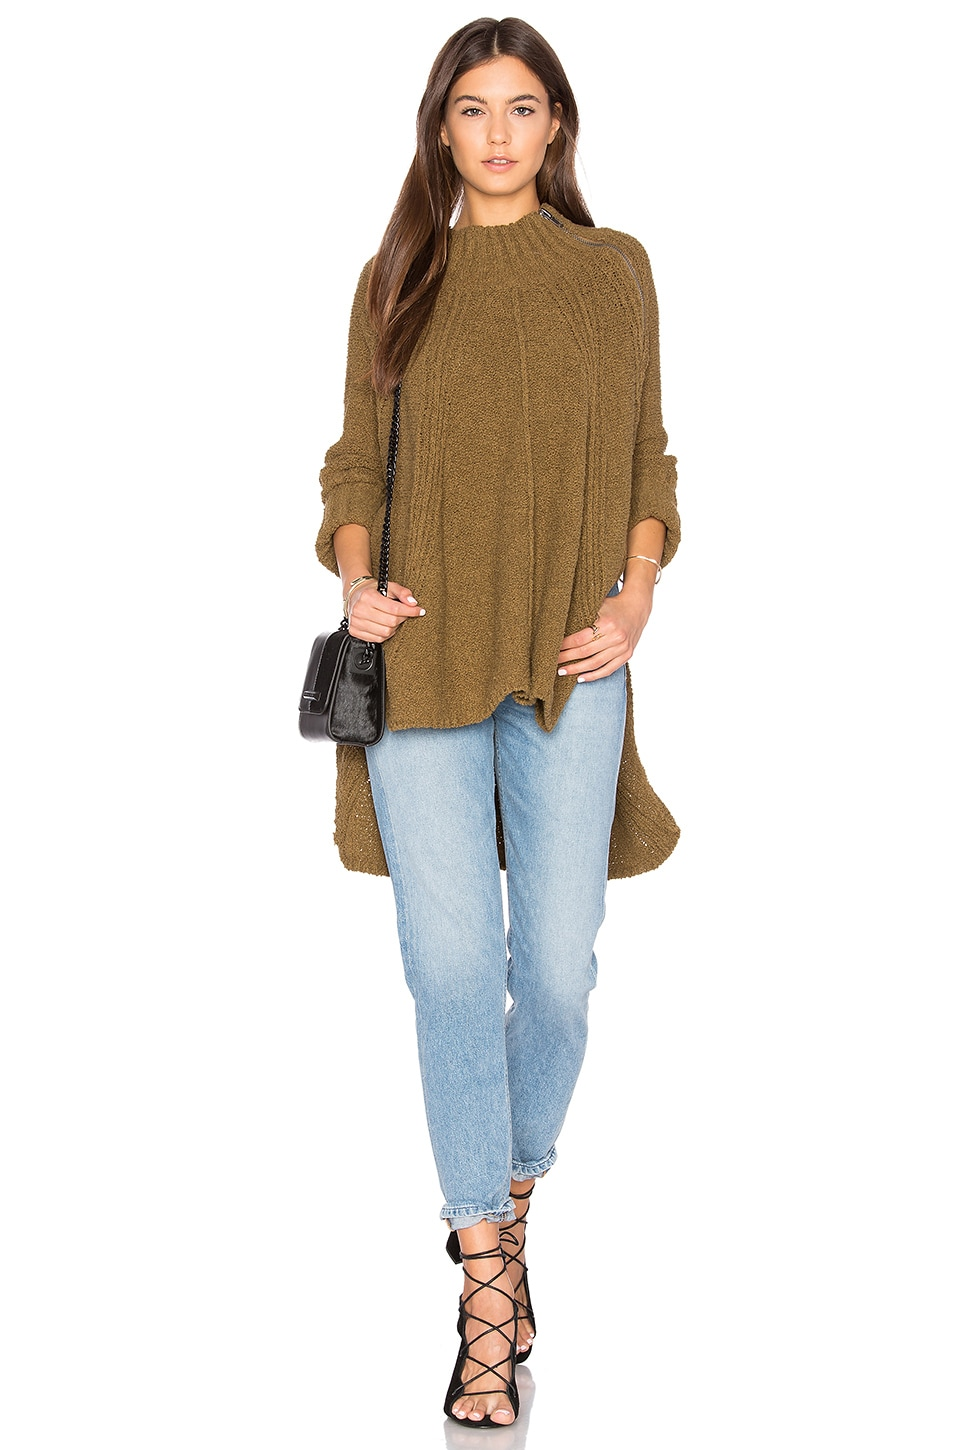 Spin Around Poncho Top by Free People